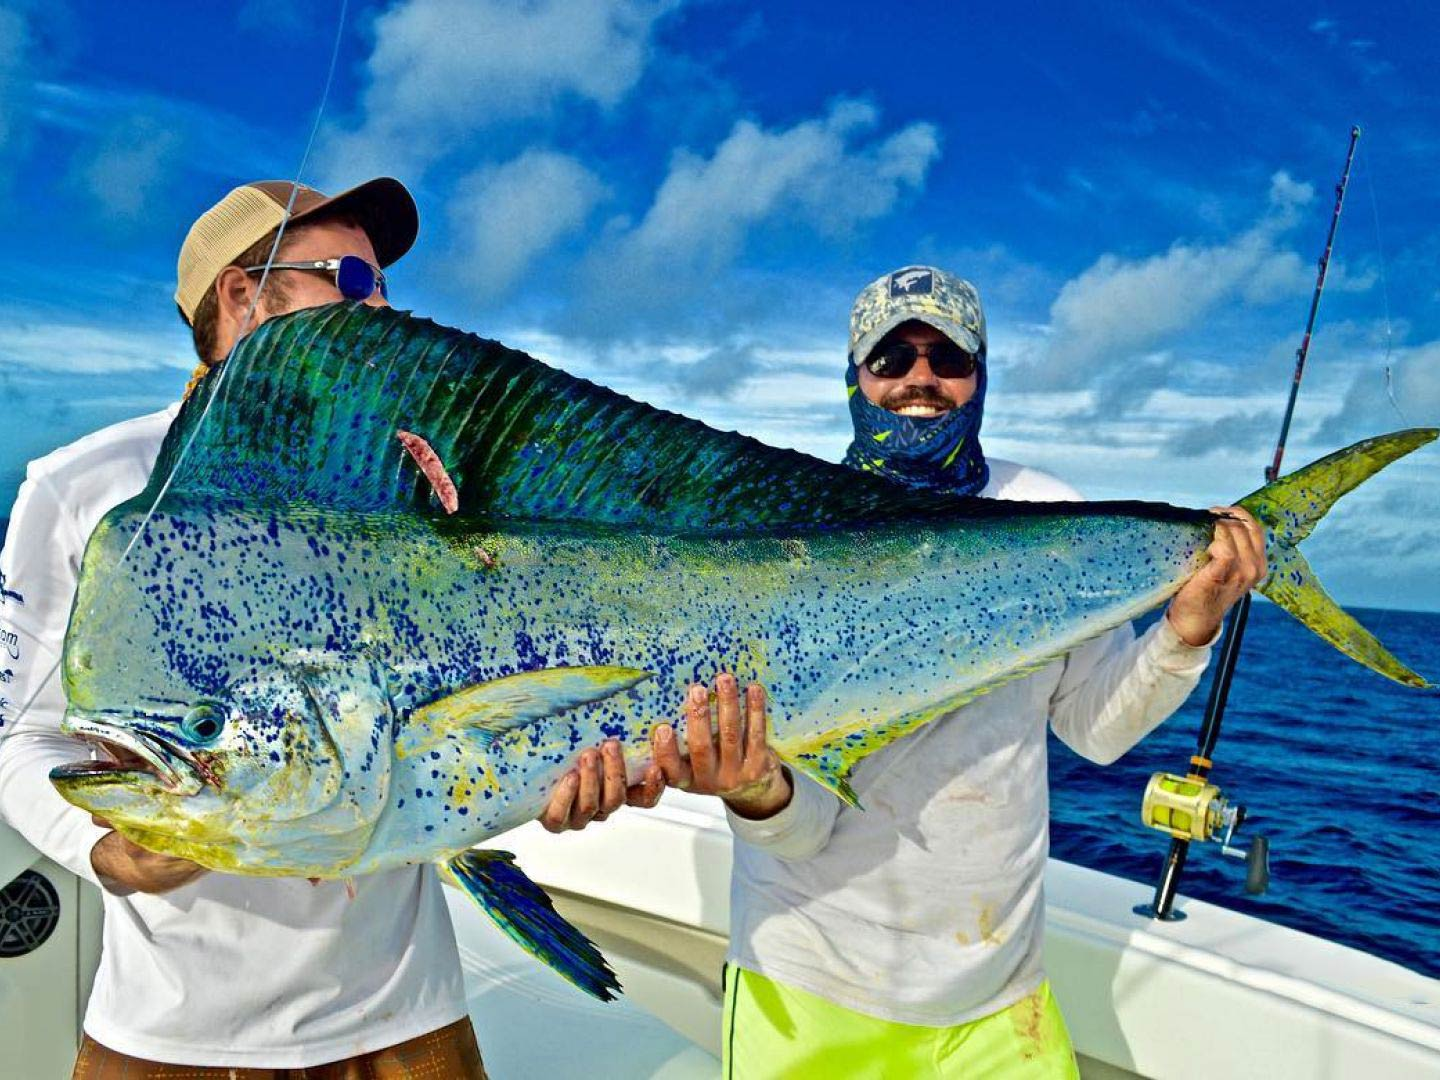 Two men on an offshore vessel smile and hold a large Mahi Mahi